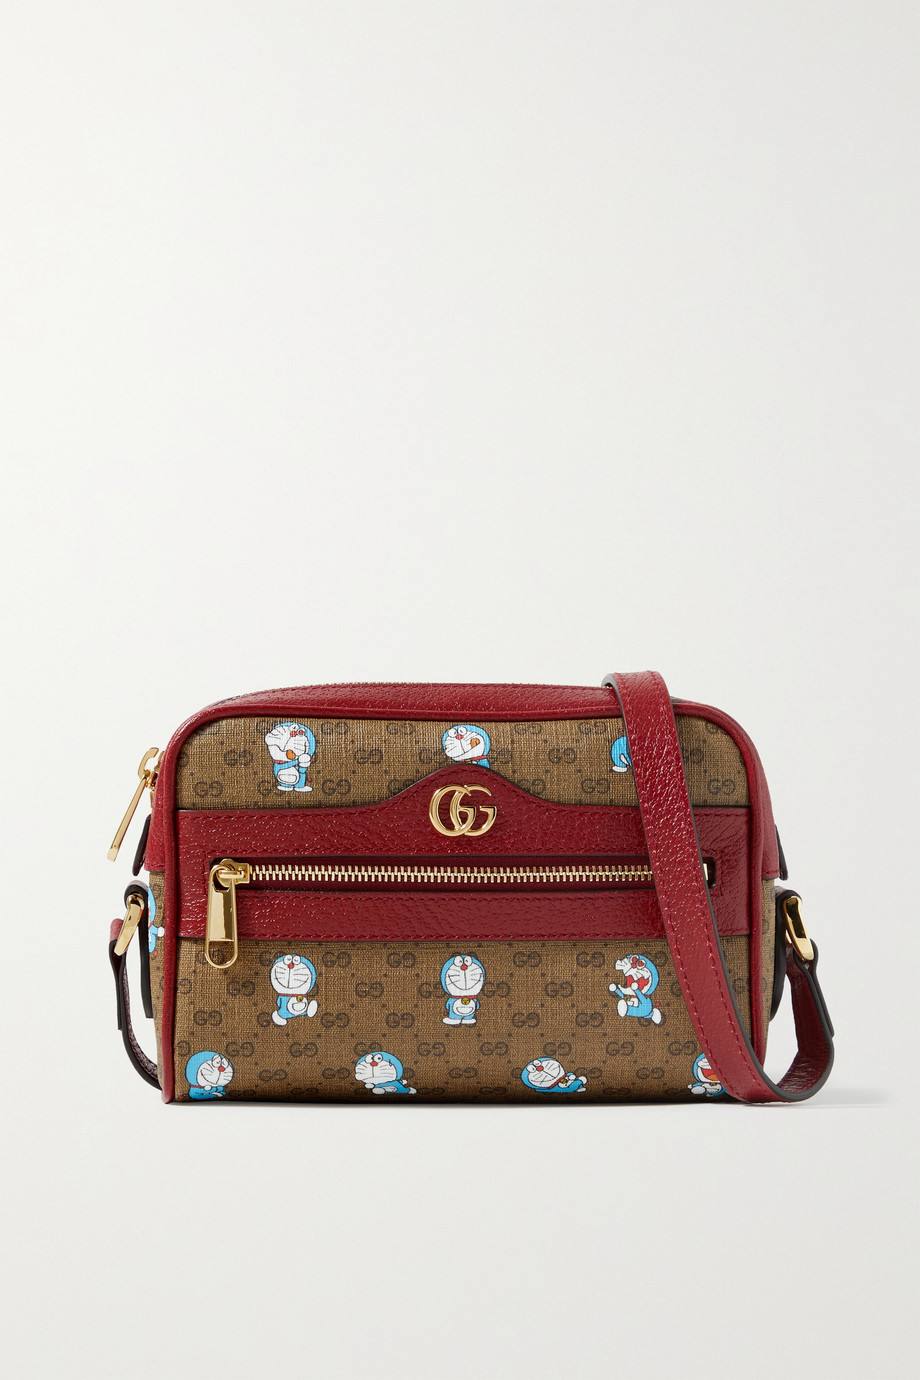 GUCCI + Doraemon small textured leather-trimmed printed coated-canvas shoulder bag